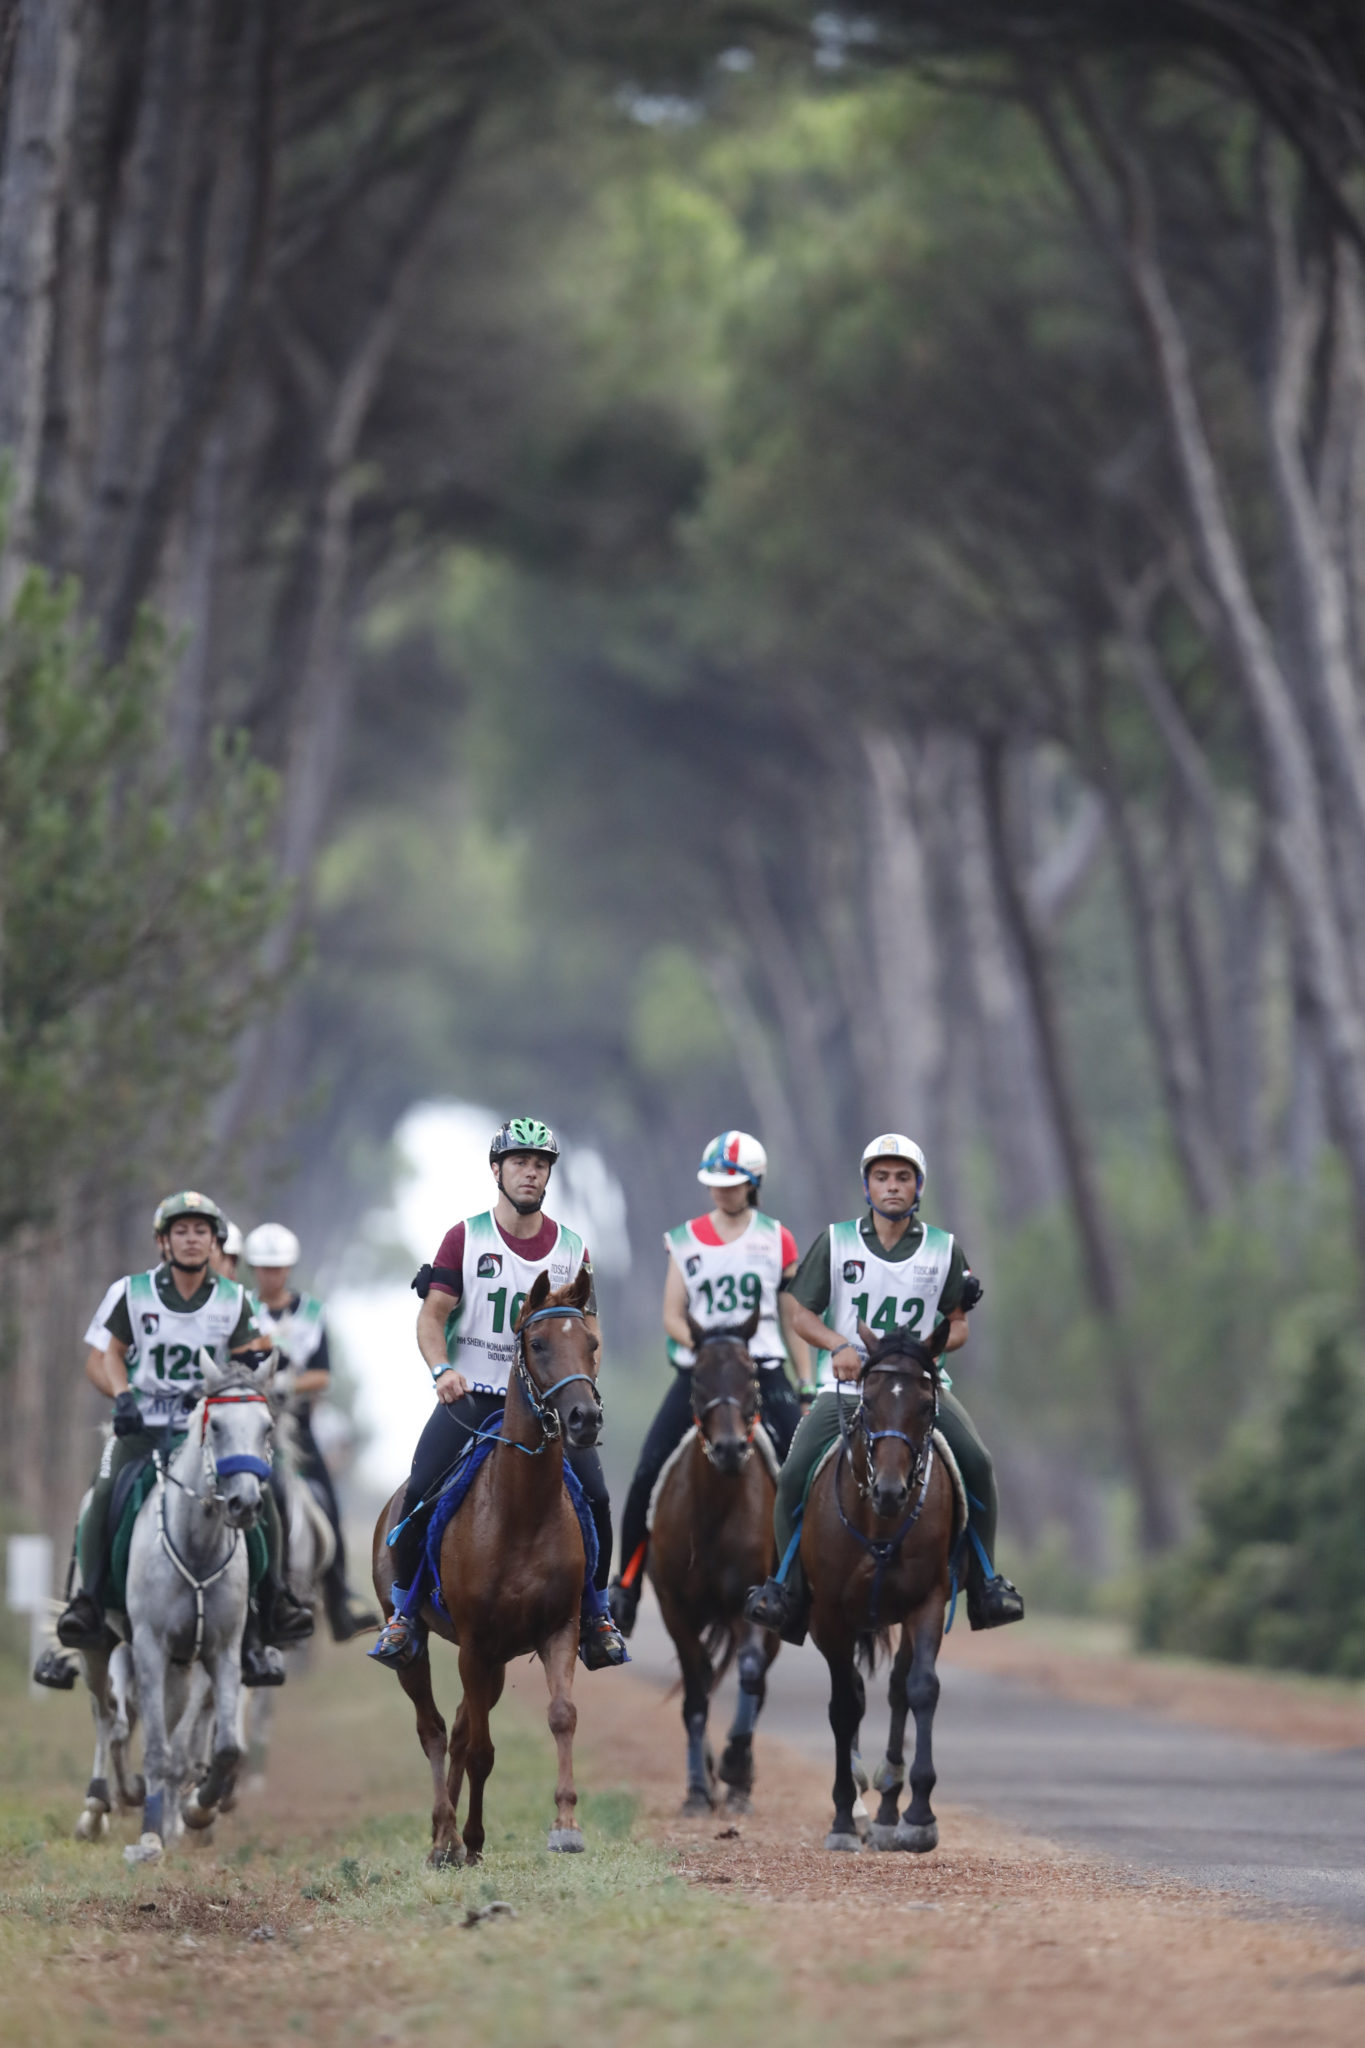 Endurance World Toscana Endurance Lifestyle. In the forest.